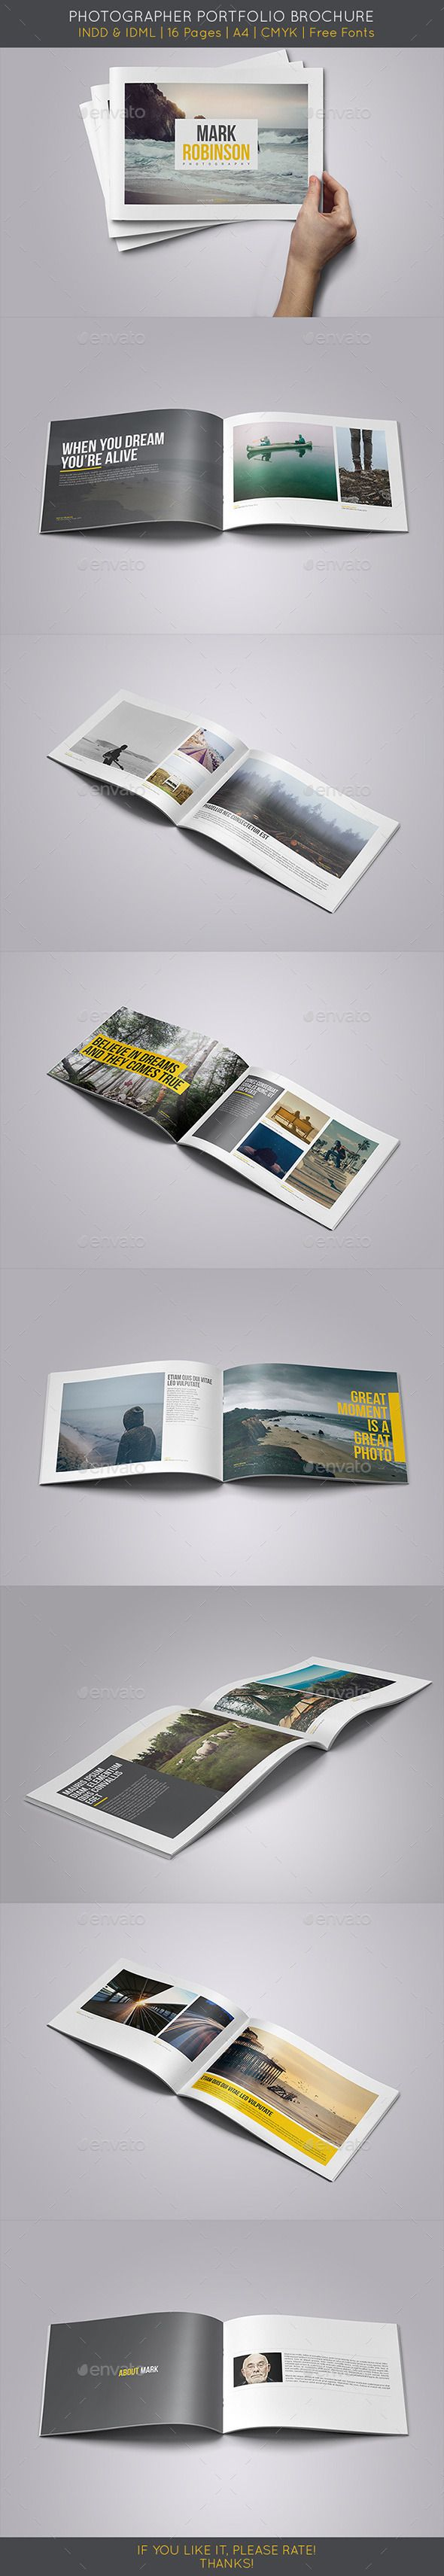 Portfolio Brochure Template #design Download: http://graphicriver.net/item/portfolio-brochure-vol1/9871120?ref=ksioks